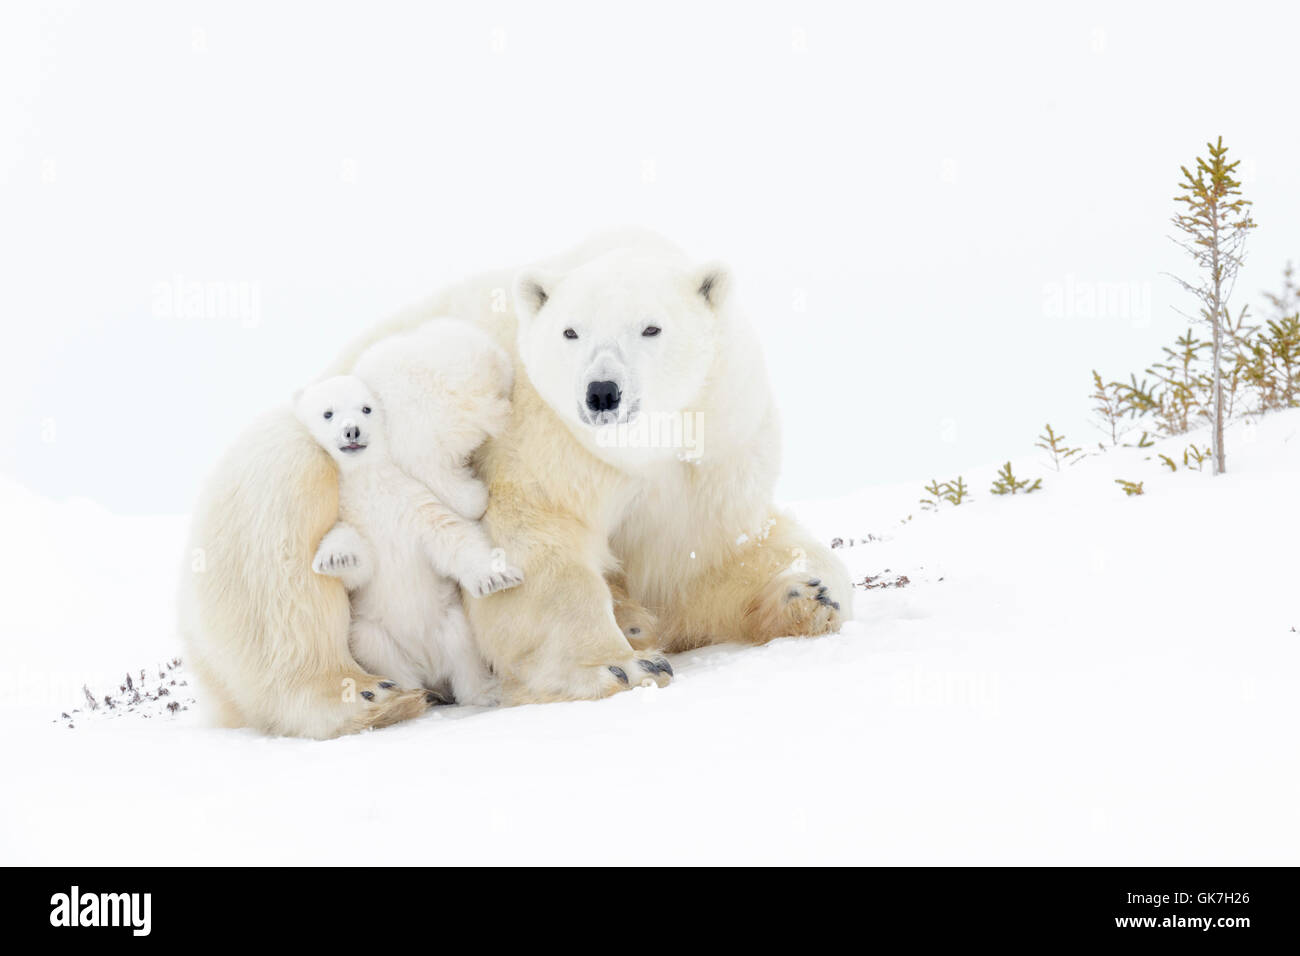 Polar bear mother (Ursus maritimus) getting up with two playing cubs, Wapusk National Park, Manitoba, Canada - Stock Image